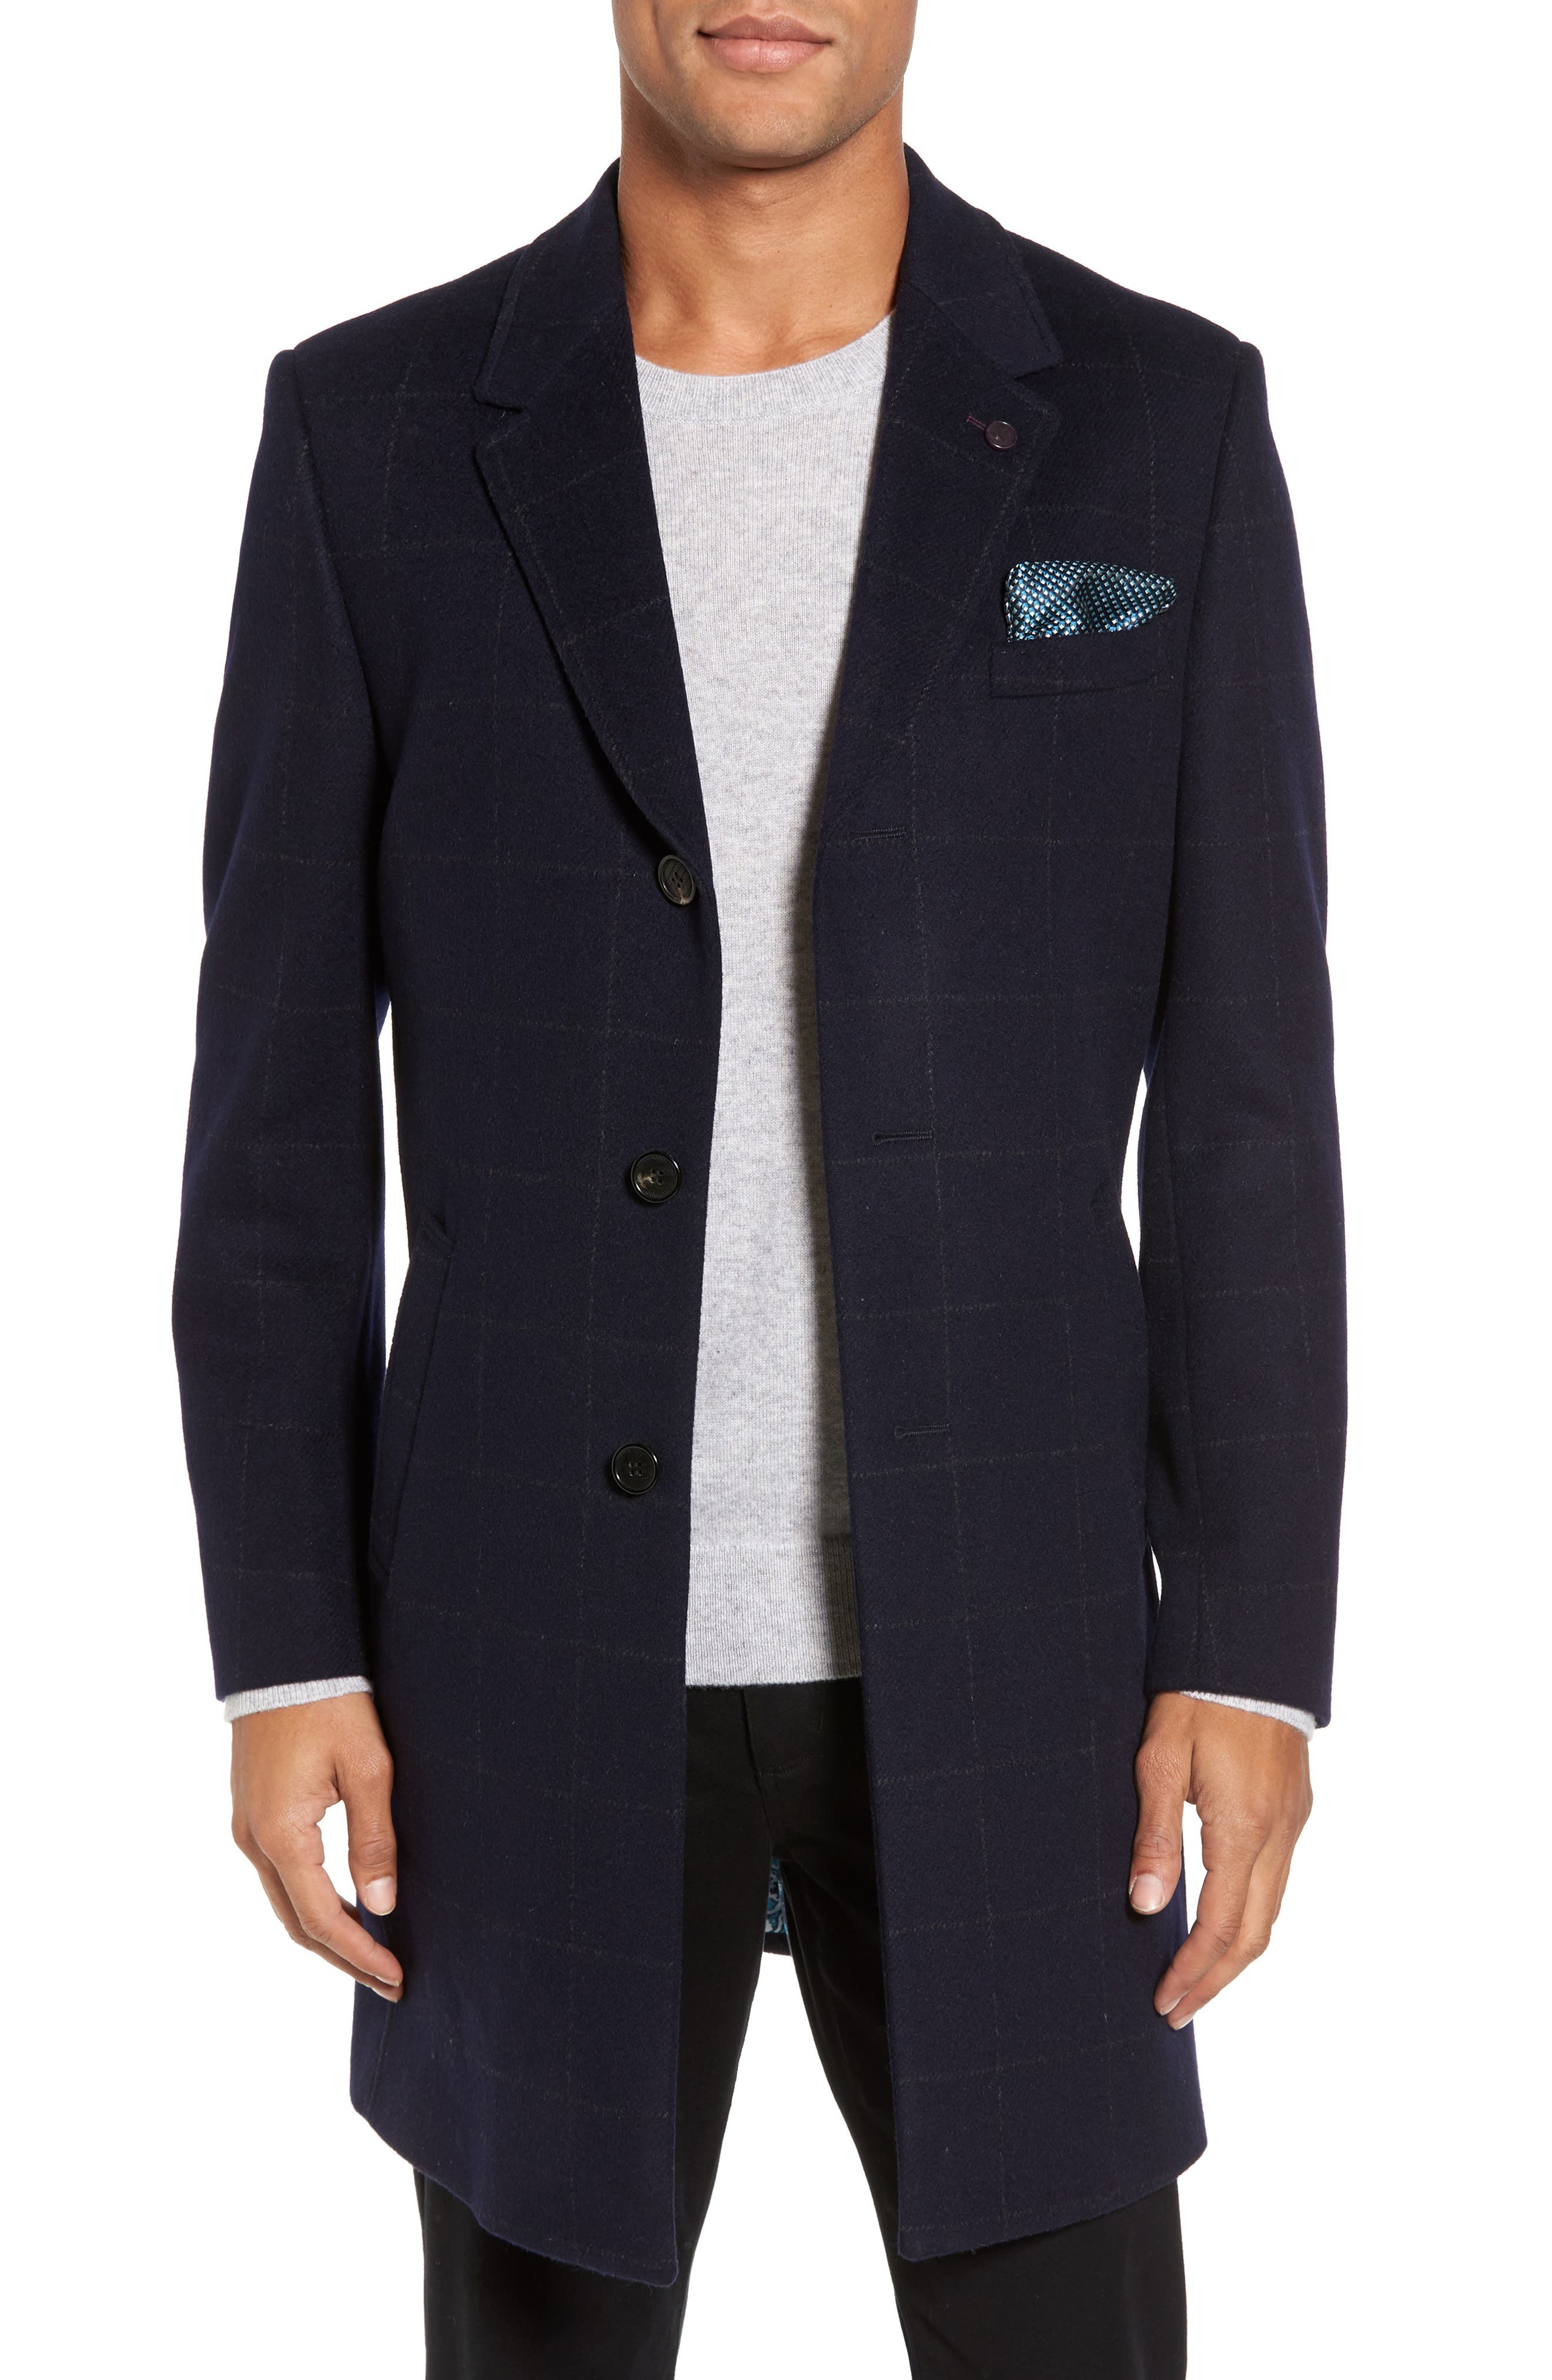 Endurance Wool Blend Overcoat,                         Main,                         color, Navy